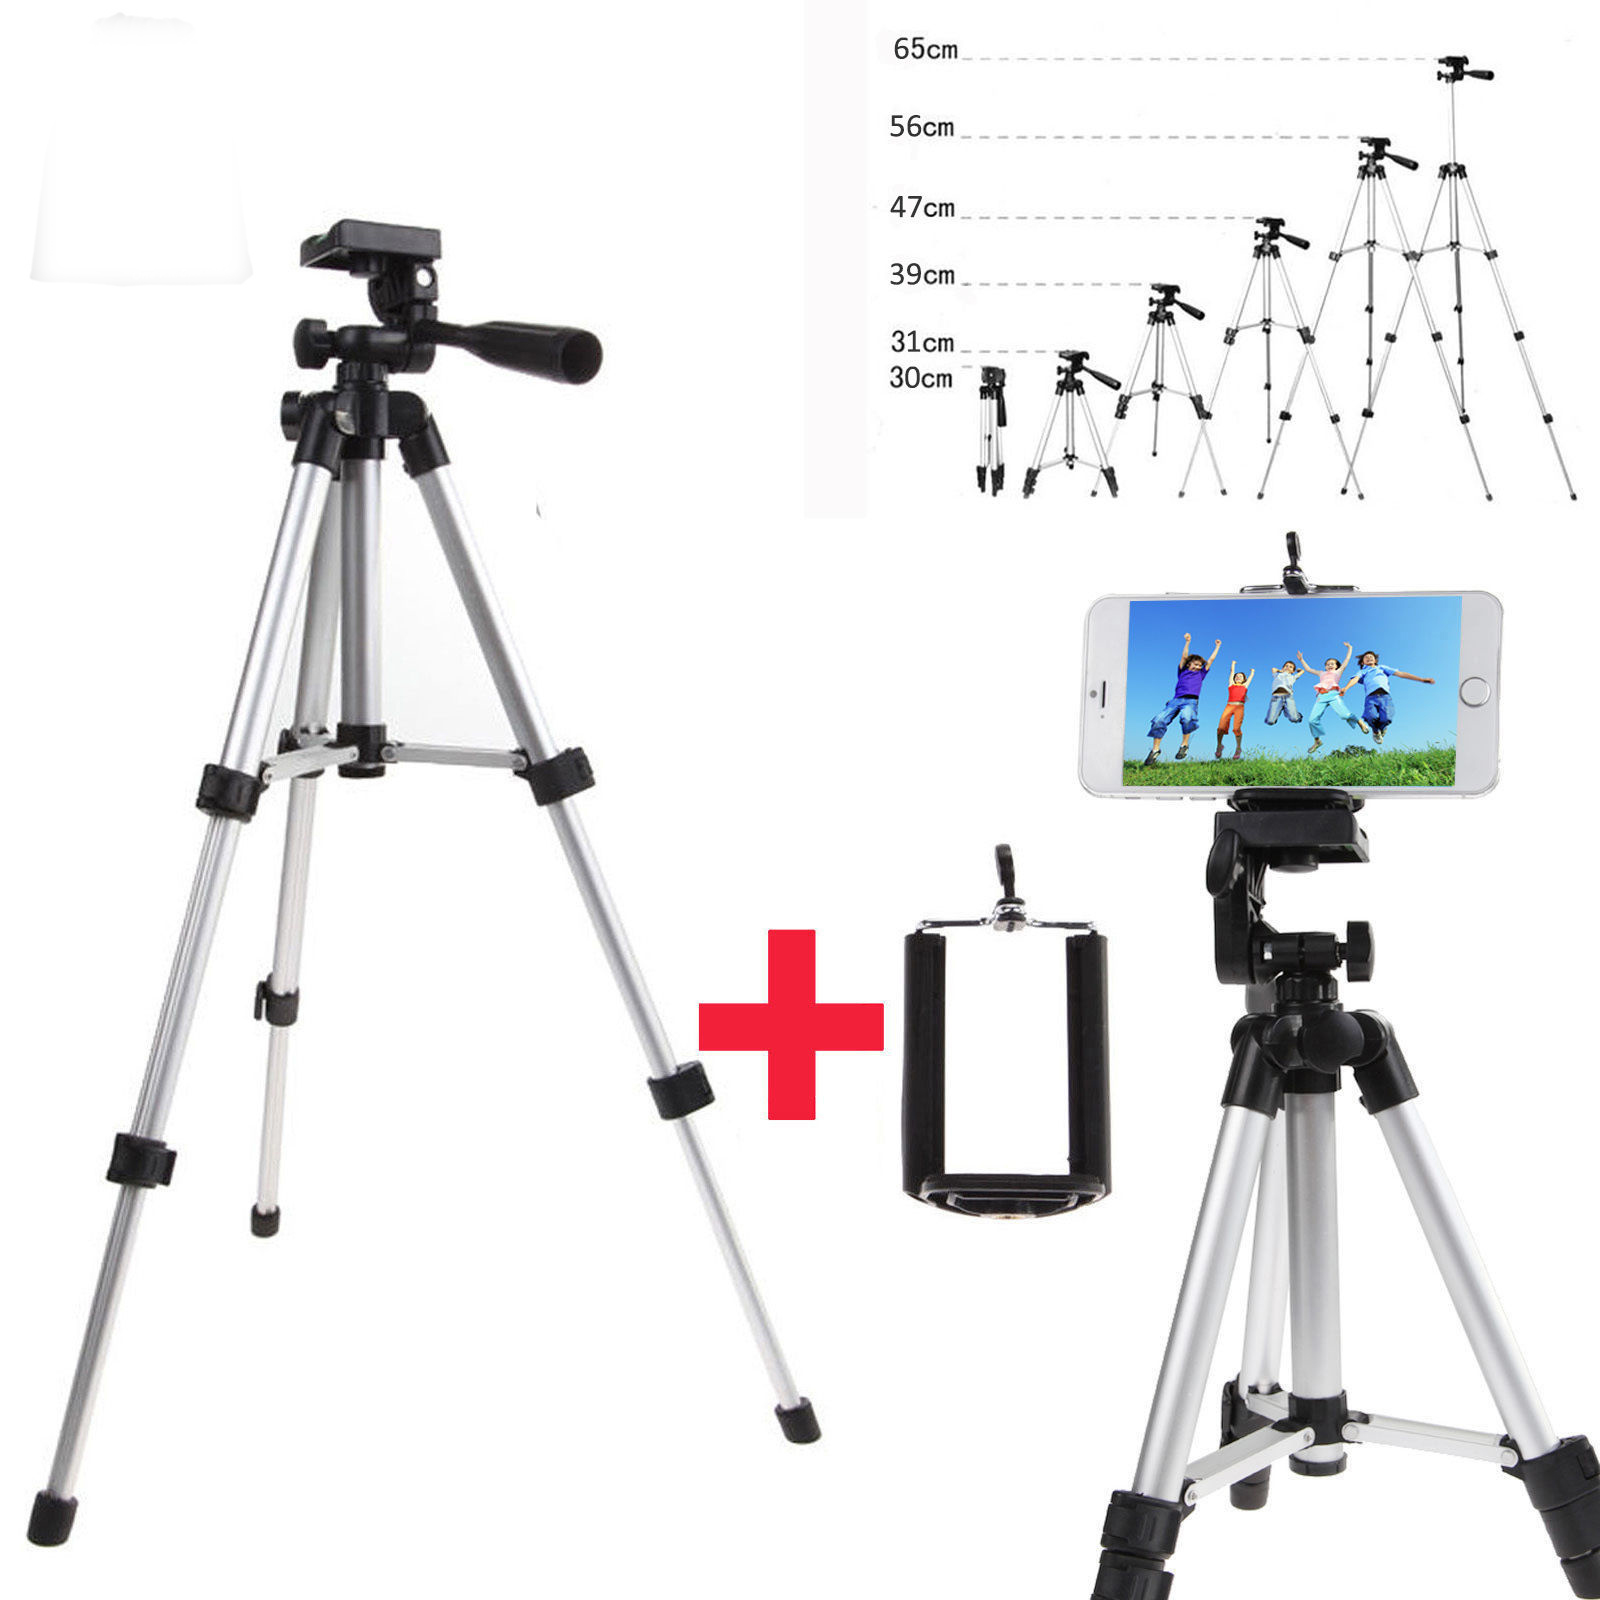 timeless design 7ae0a d25c2 Professional Camera Tripod Stand Mount + Phone Holder for Cell Phone iPhone  XS XR X 8 7 6 6S Plus, Samsung S9 S8 S7 S6 Edge(Plus) Note 9 S10/S10E, LG  ...